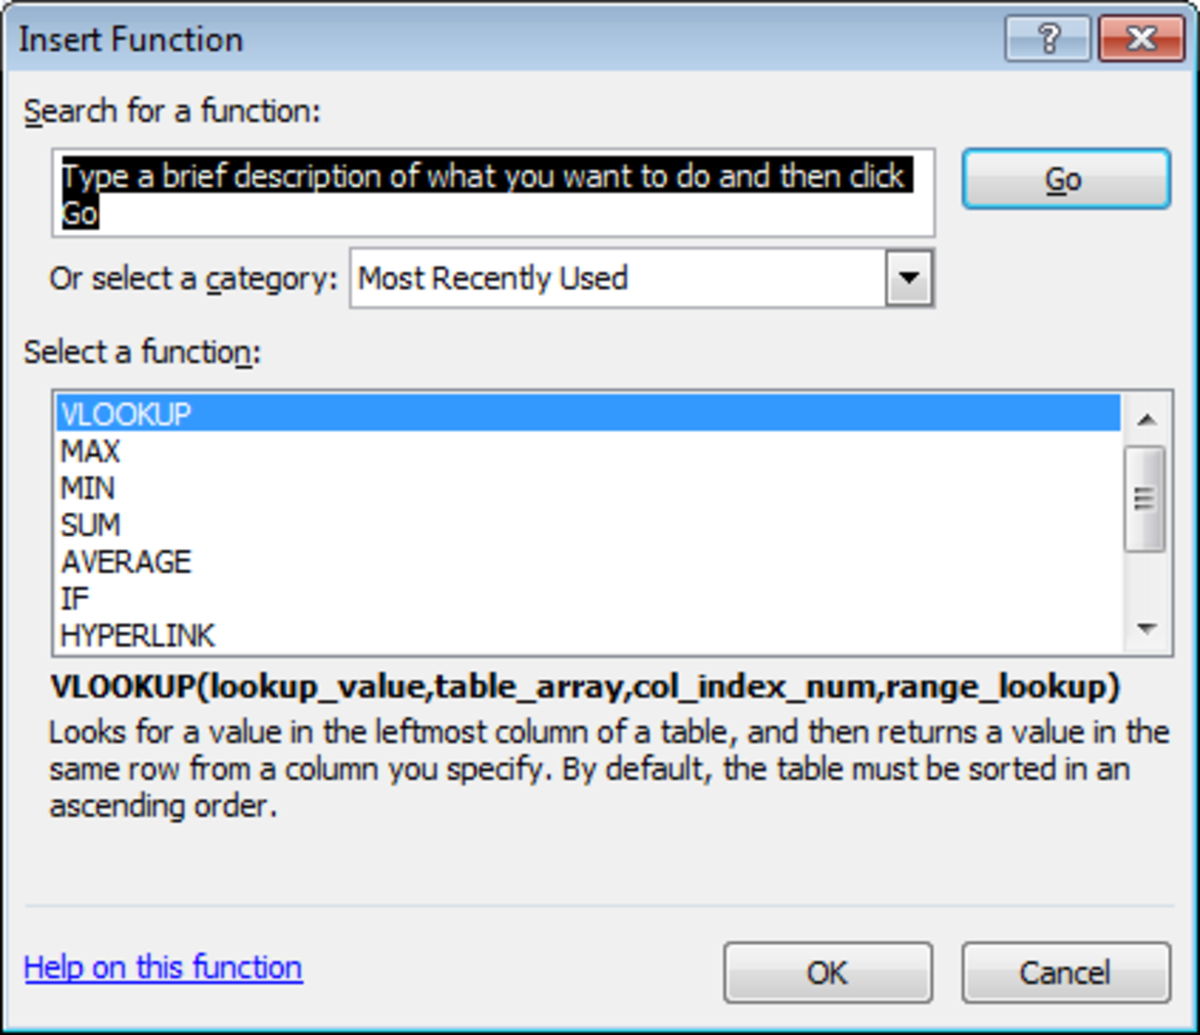 Using the Insert Function tool's search capability to find the best function for our formula in Excel 2007 or Excel 2010.